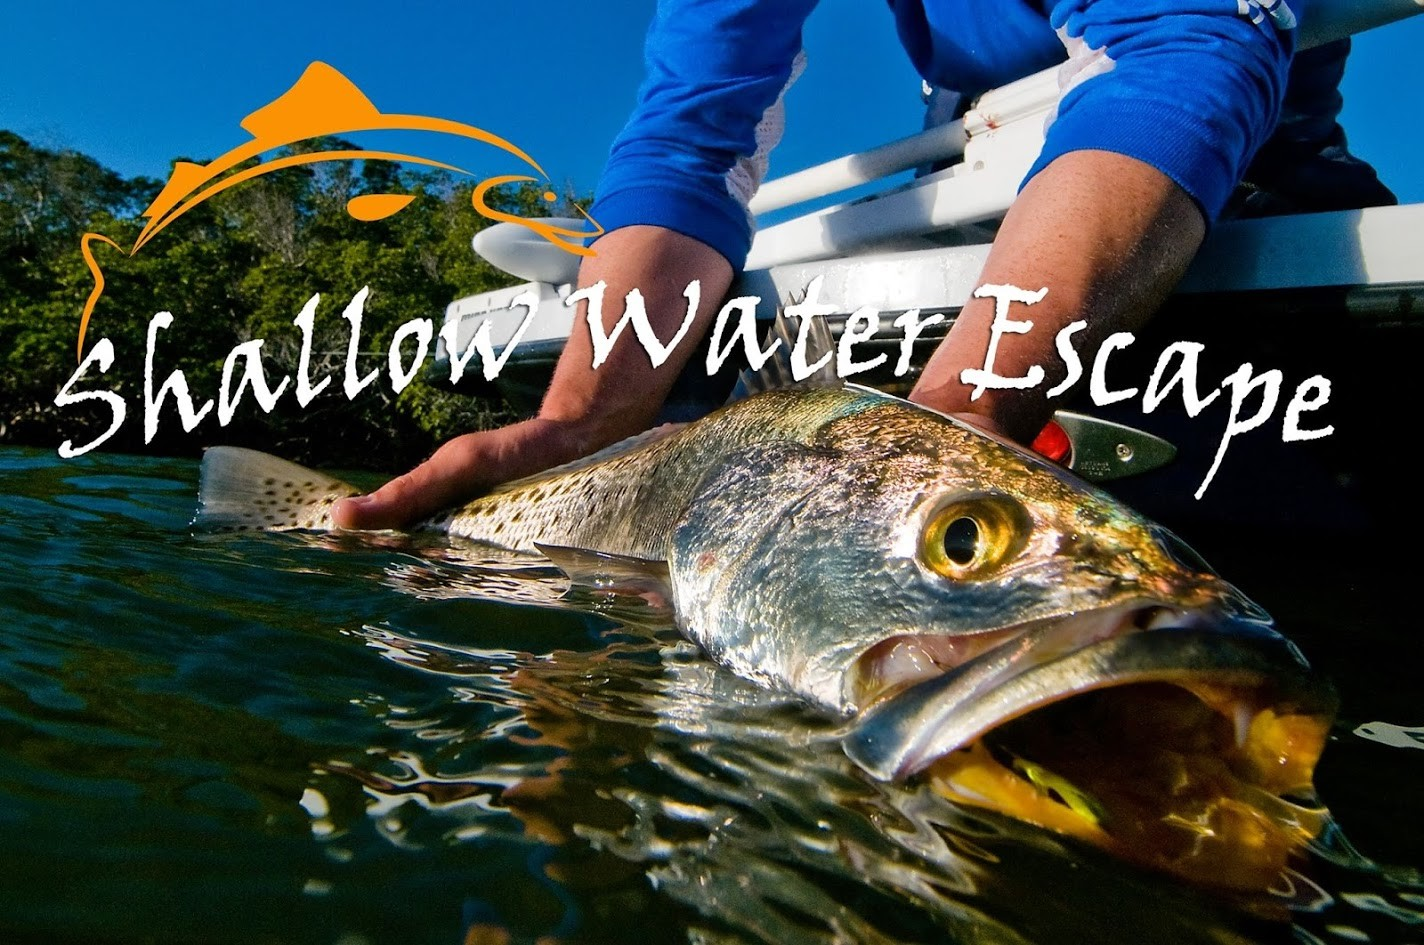 Shallow Water Escape: Half Day Inshore Fishing